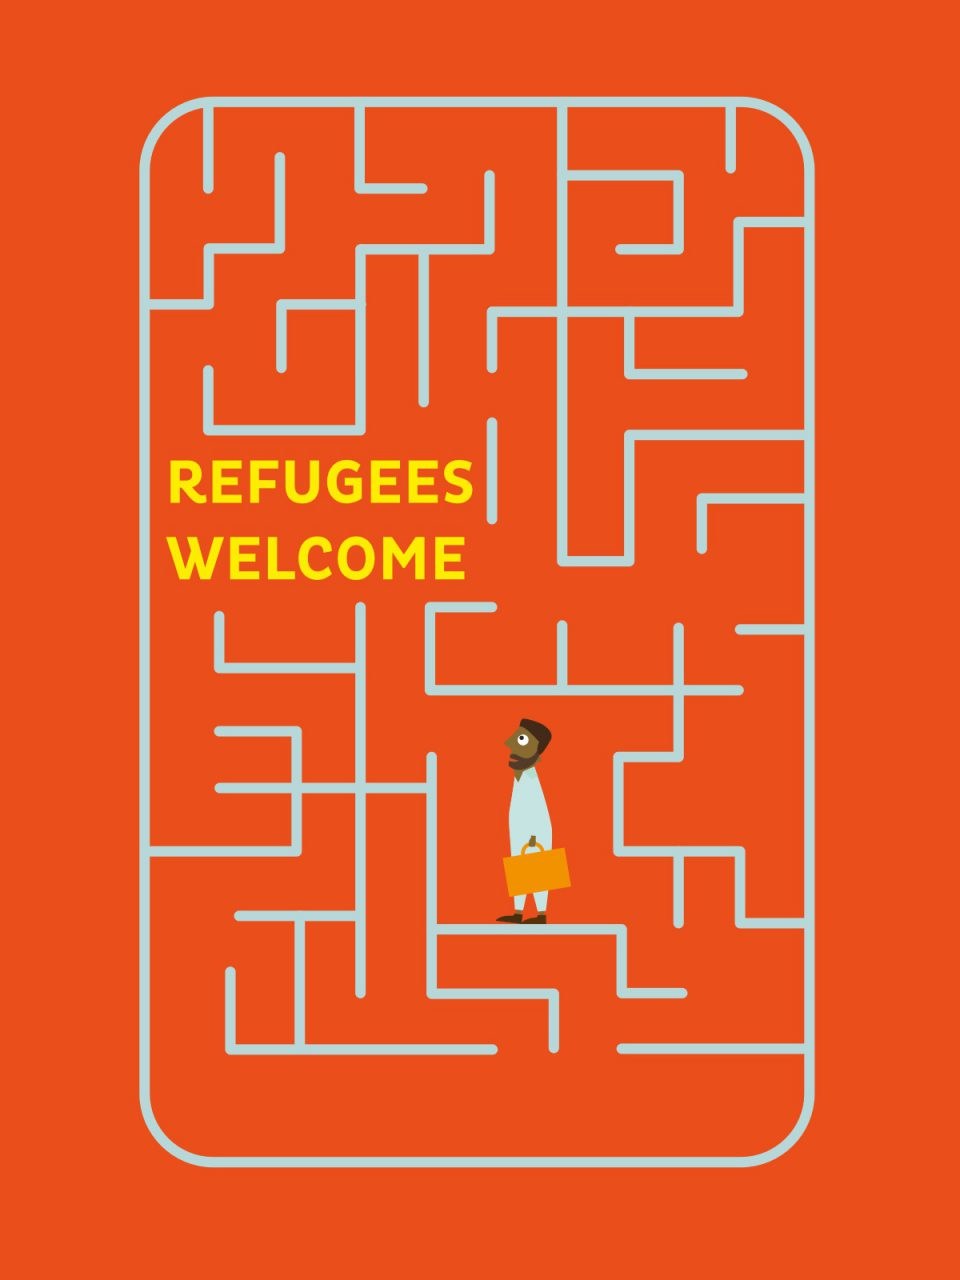 Fridaygroup report refugees welcome